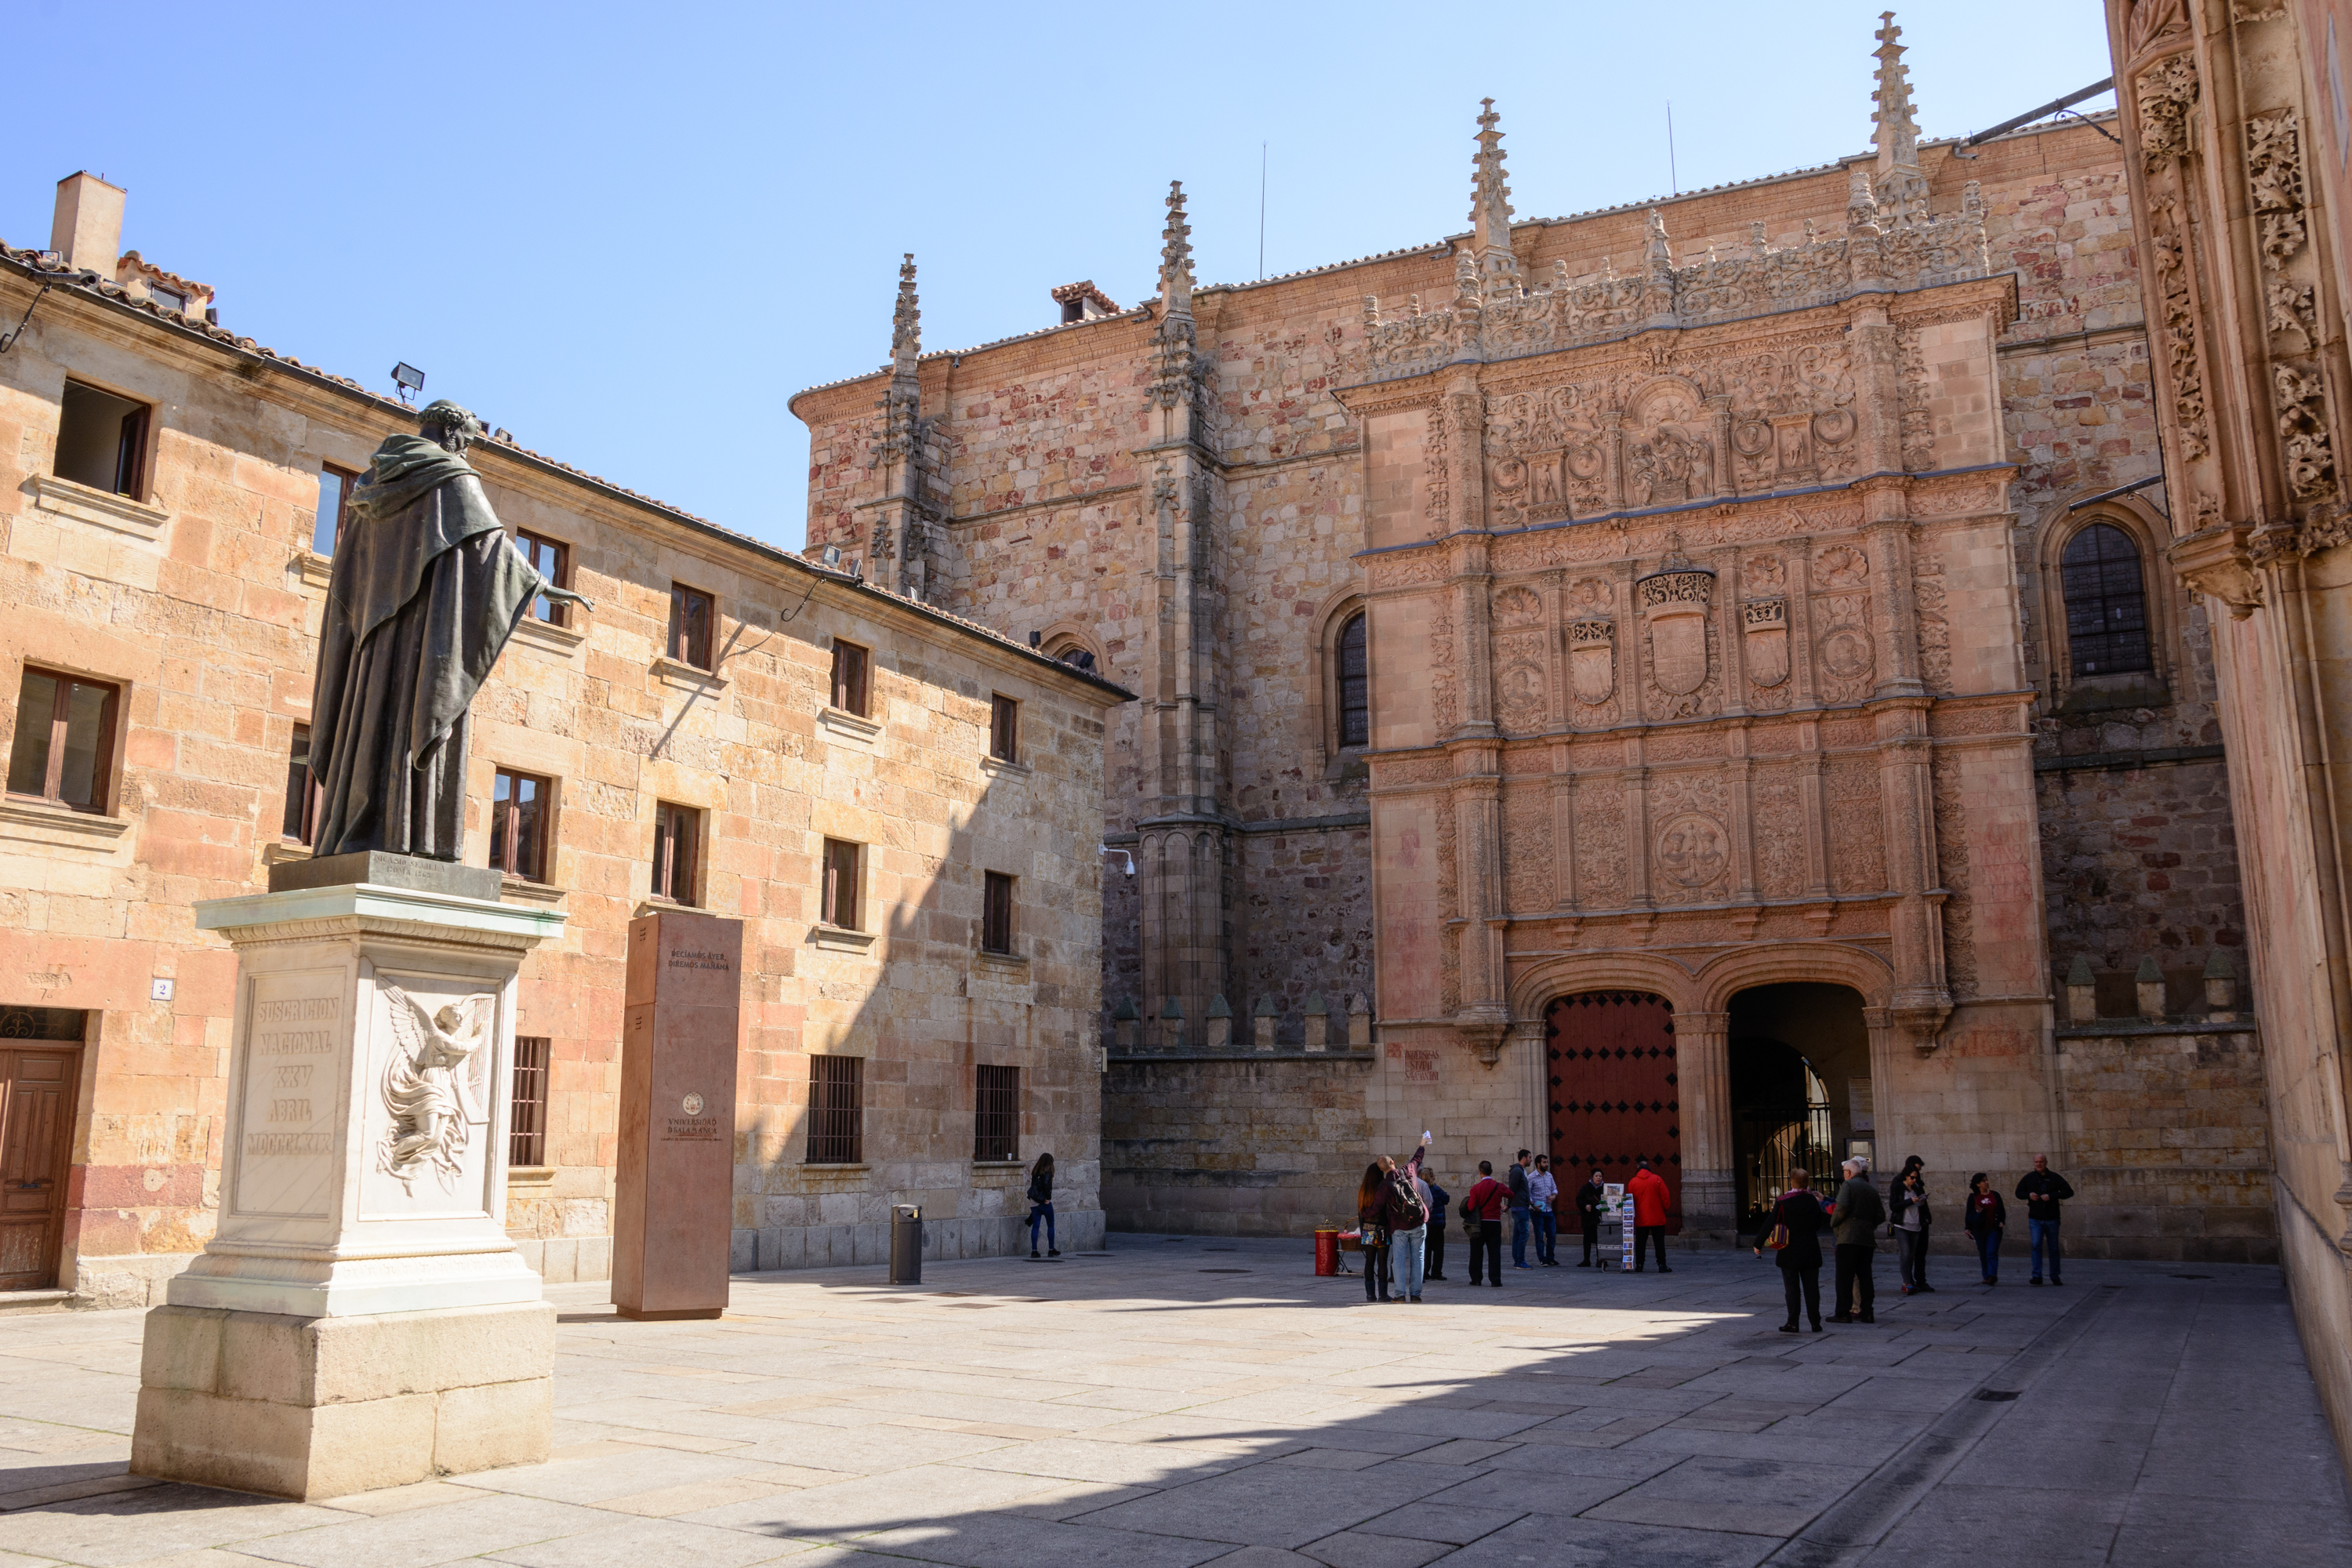 most beautiful universities in Europe - University of Salamanca